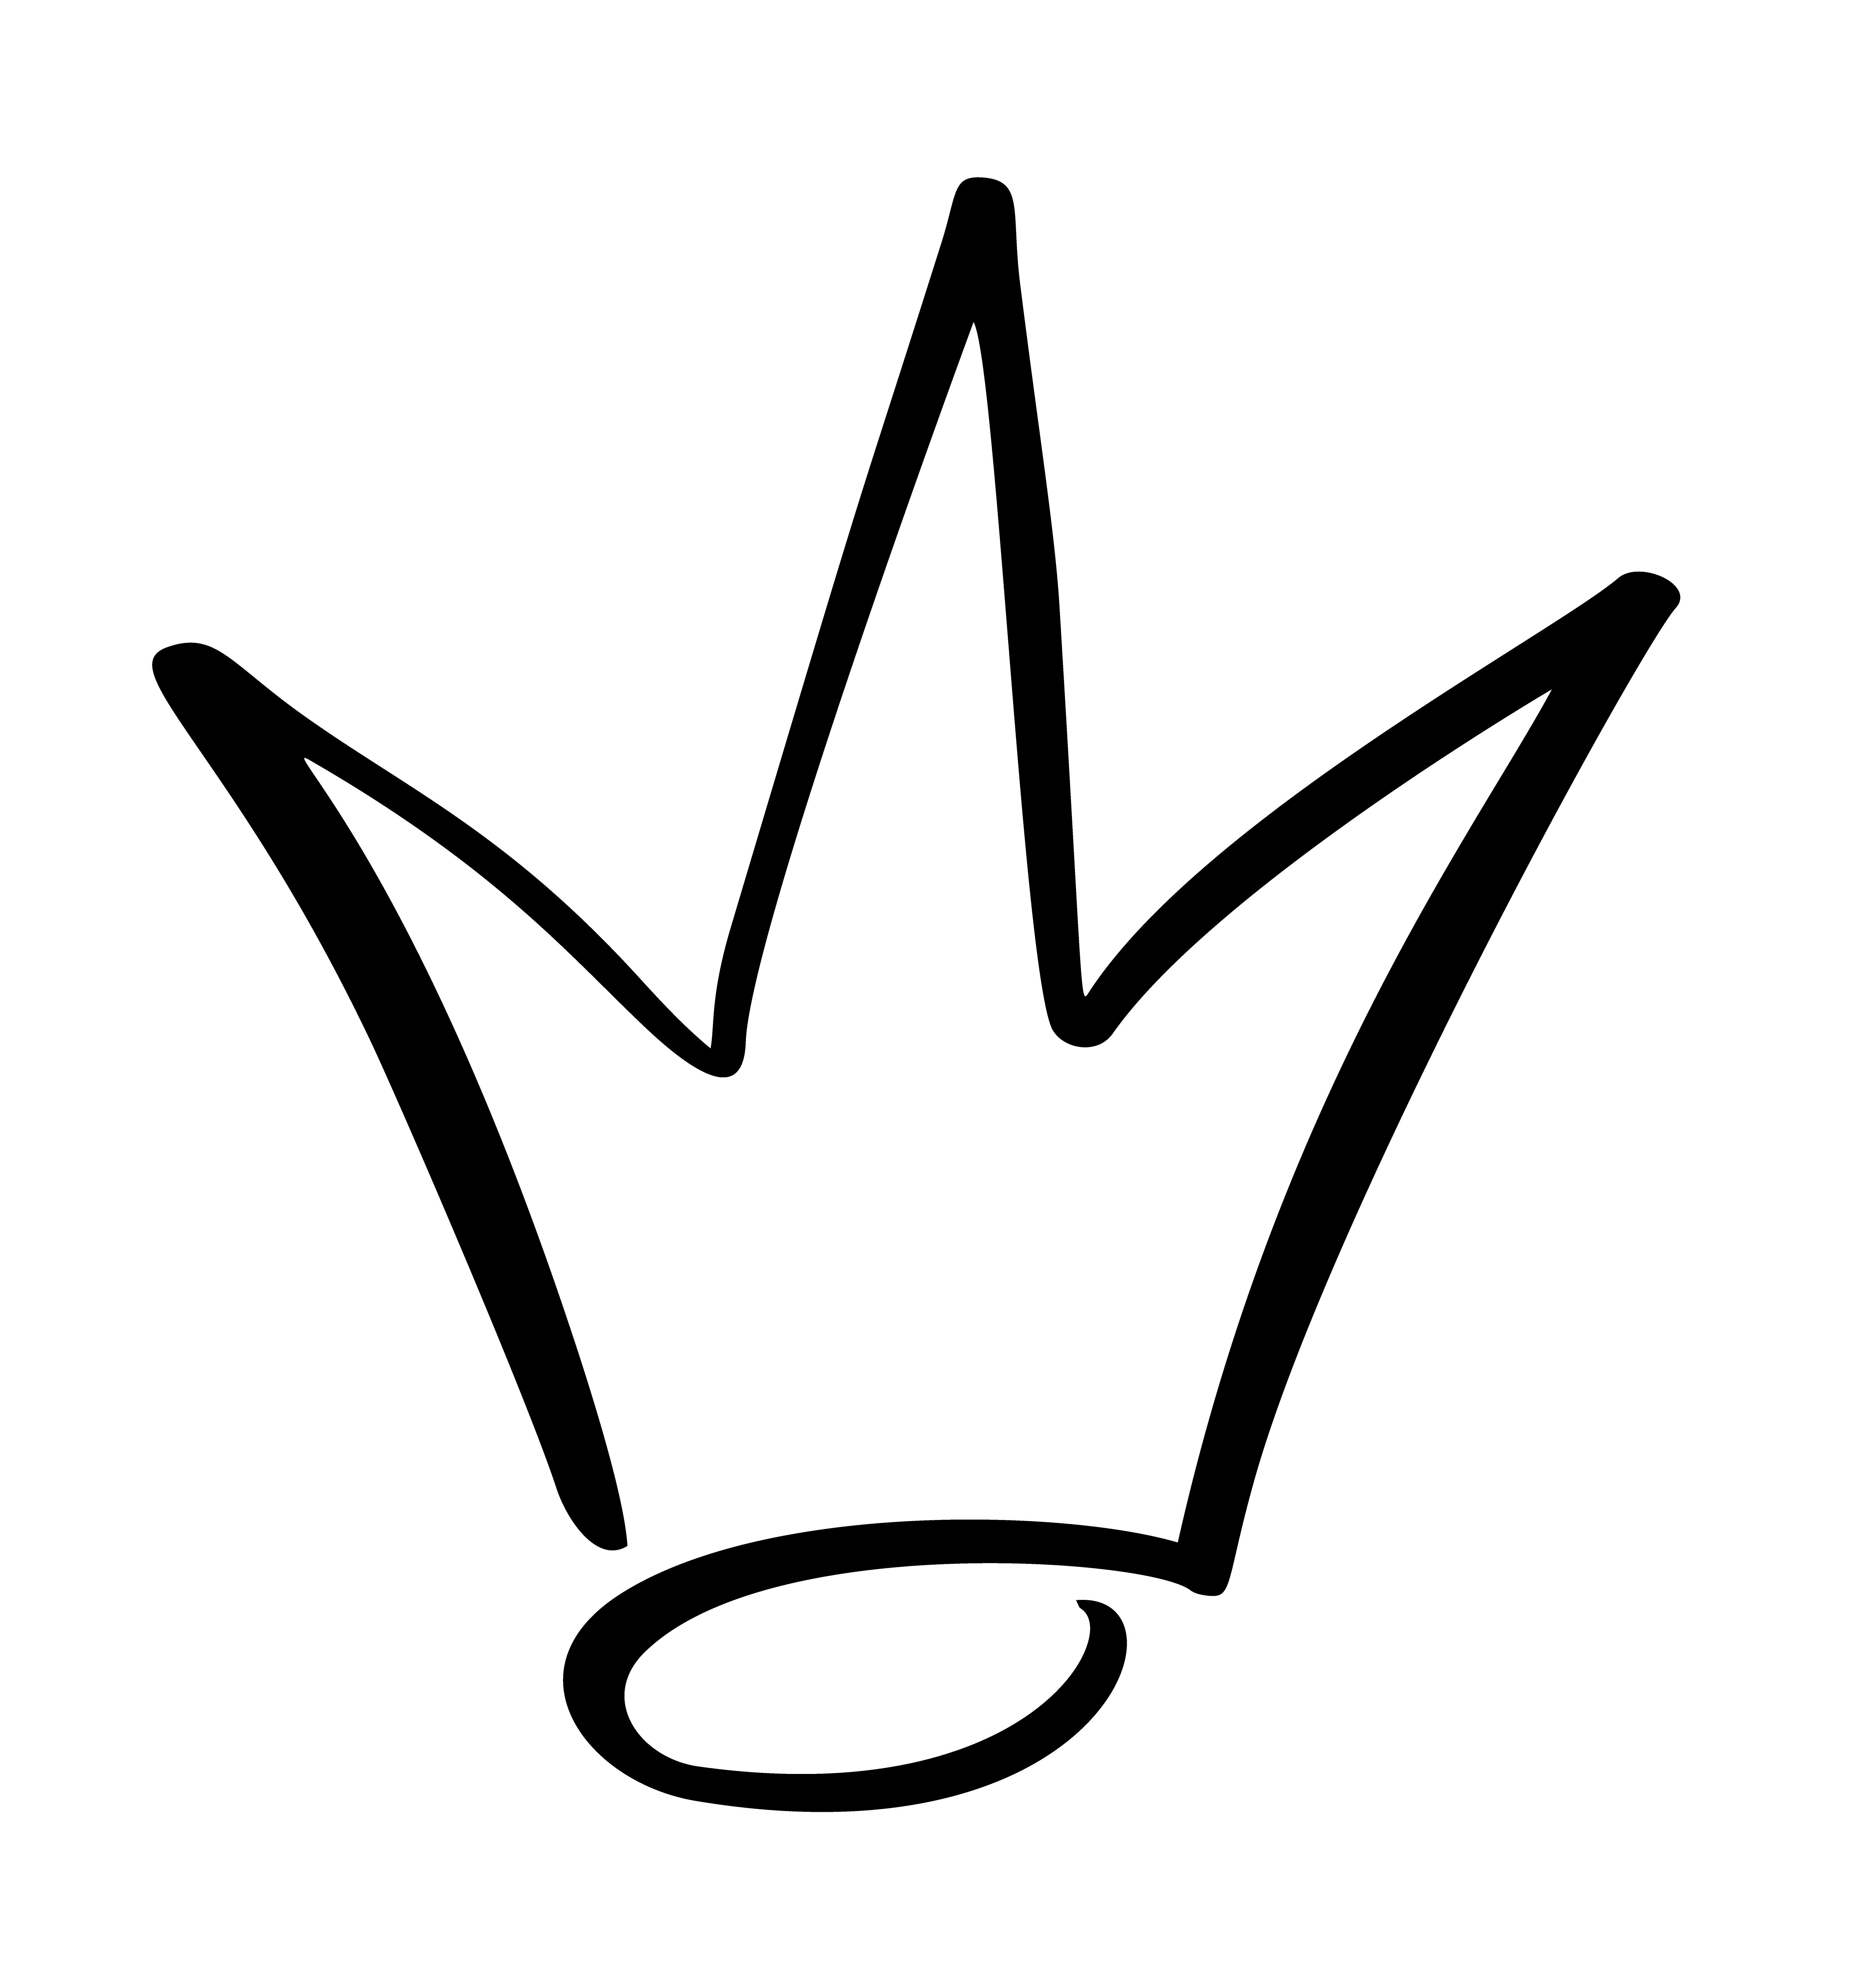 Hand Drawn Symbol Of A Stylized Crown. Drawn With A Black